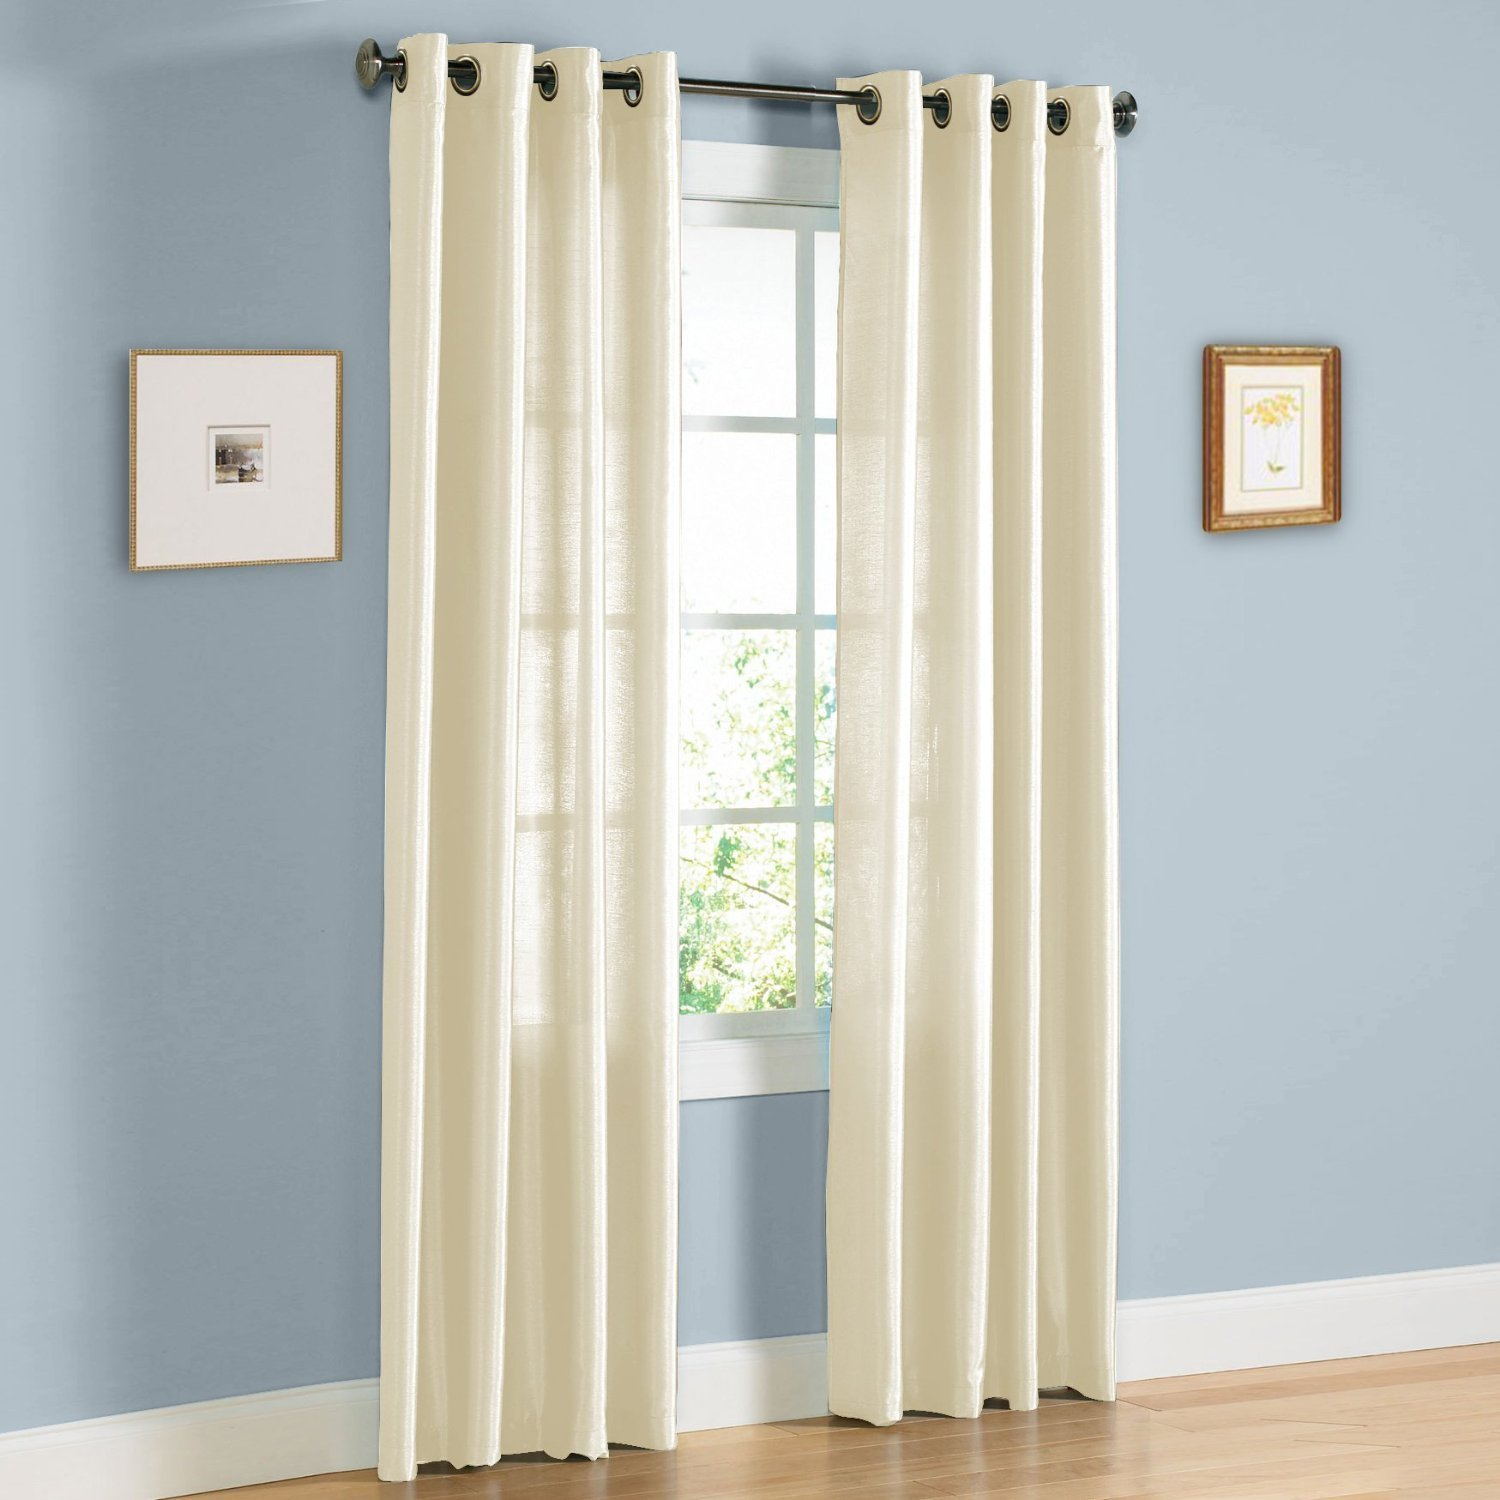 Amazon.com: Curtain panels set of 2 window curtains (38x84) (beige ...